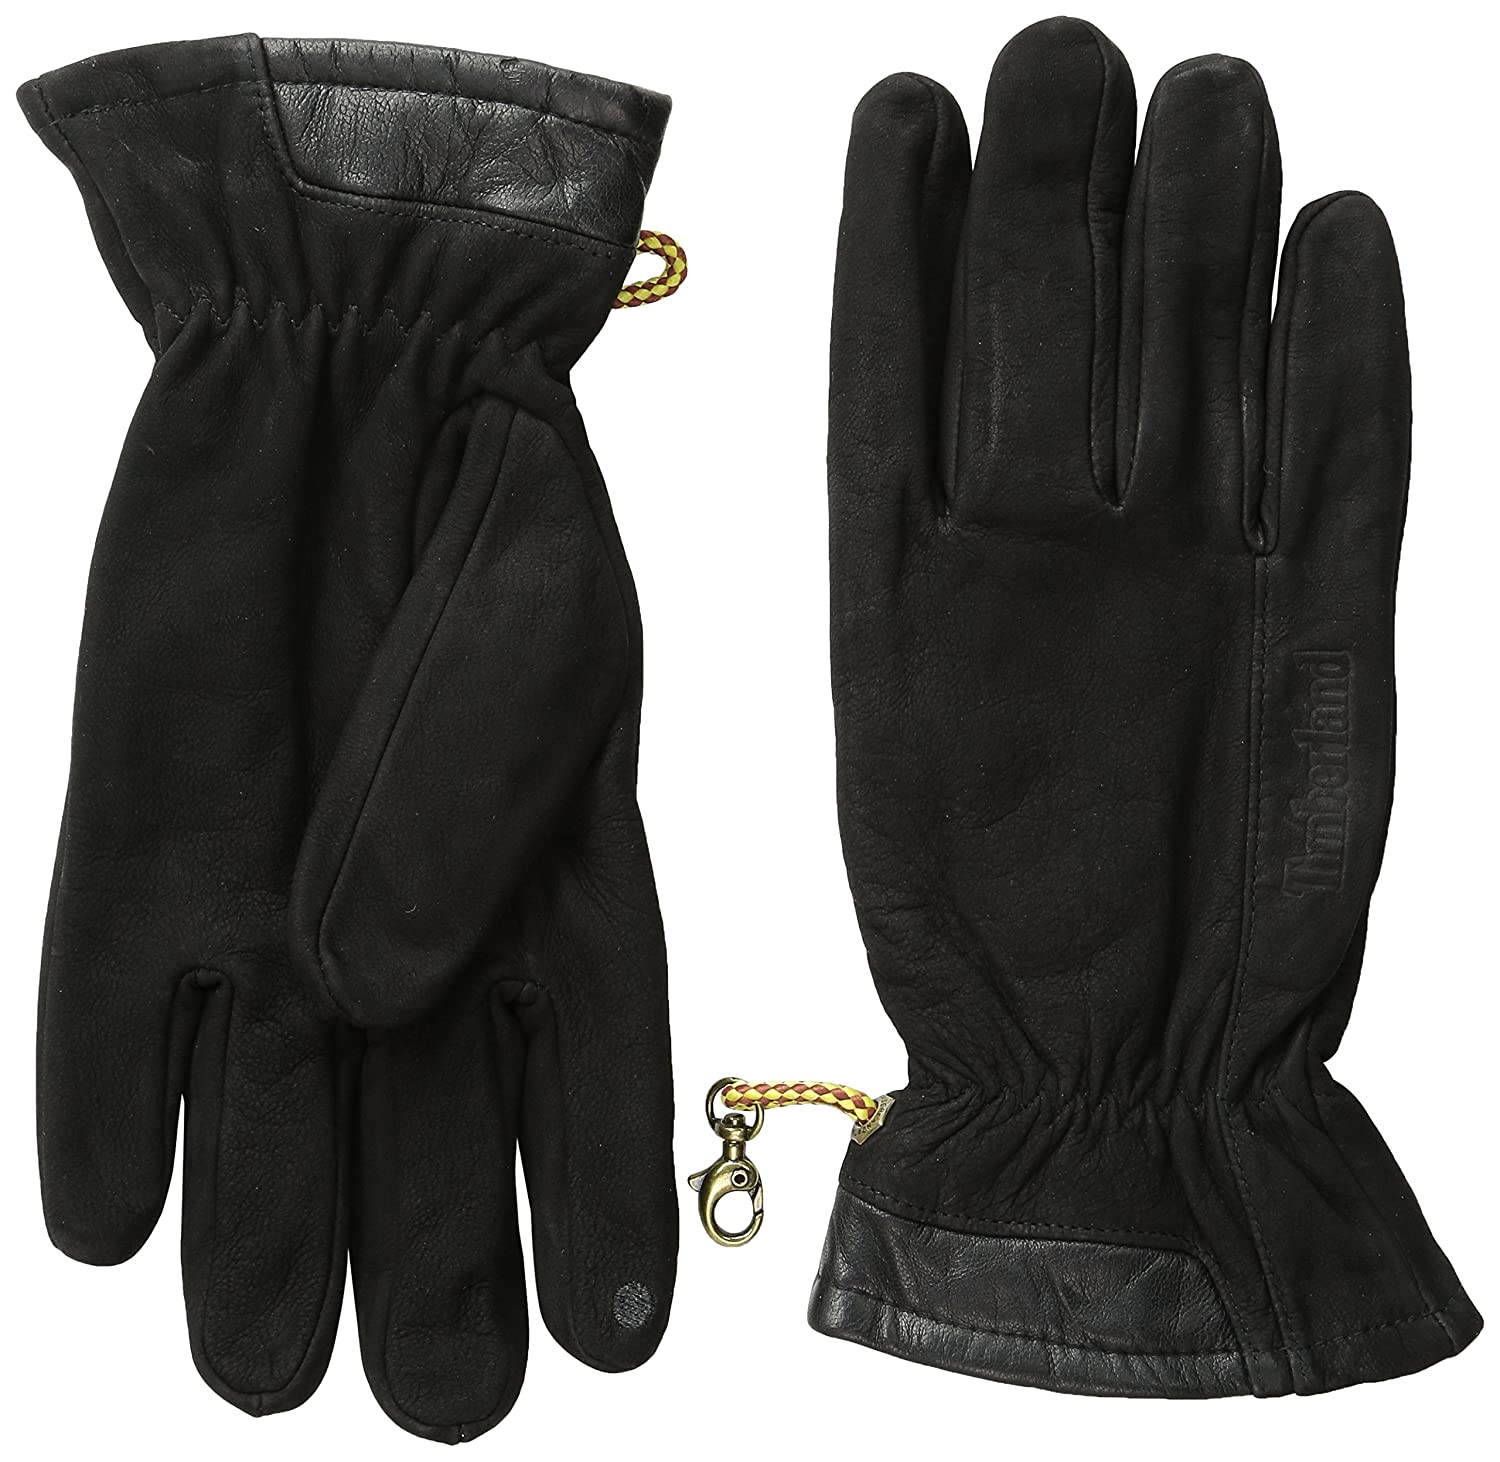 Leather driving gloves vancouver - Timberland Men S Nubuck Leather Boot Glove At Amazon Men S Clothing Store Cold Weather Gloves